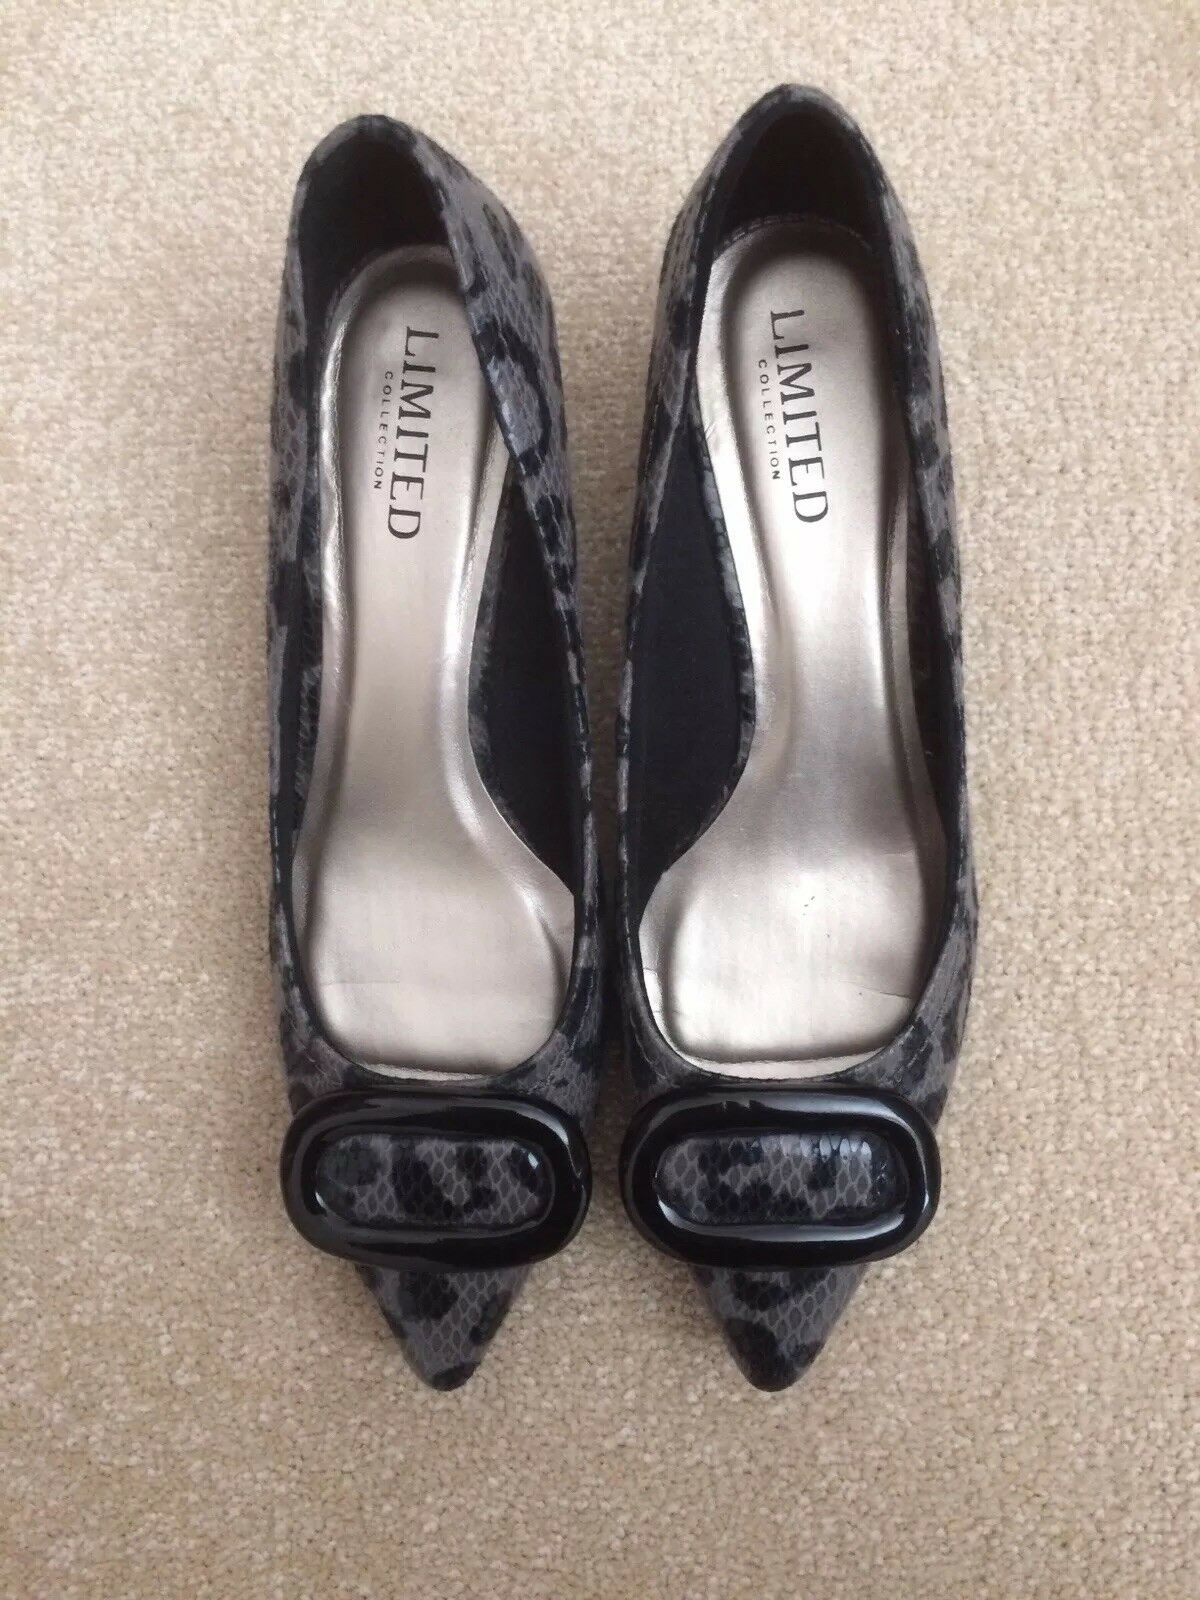 Limited Collection Grey Black Leopard Print shoes Size 5.5